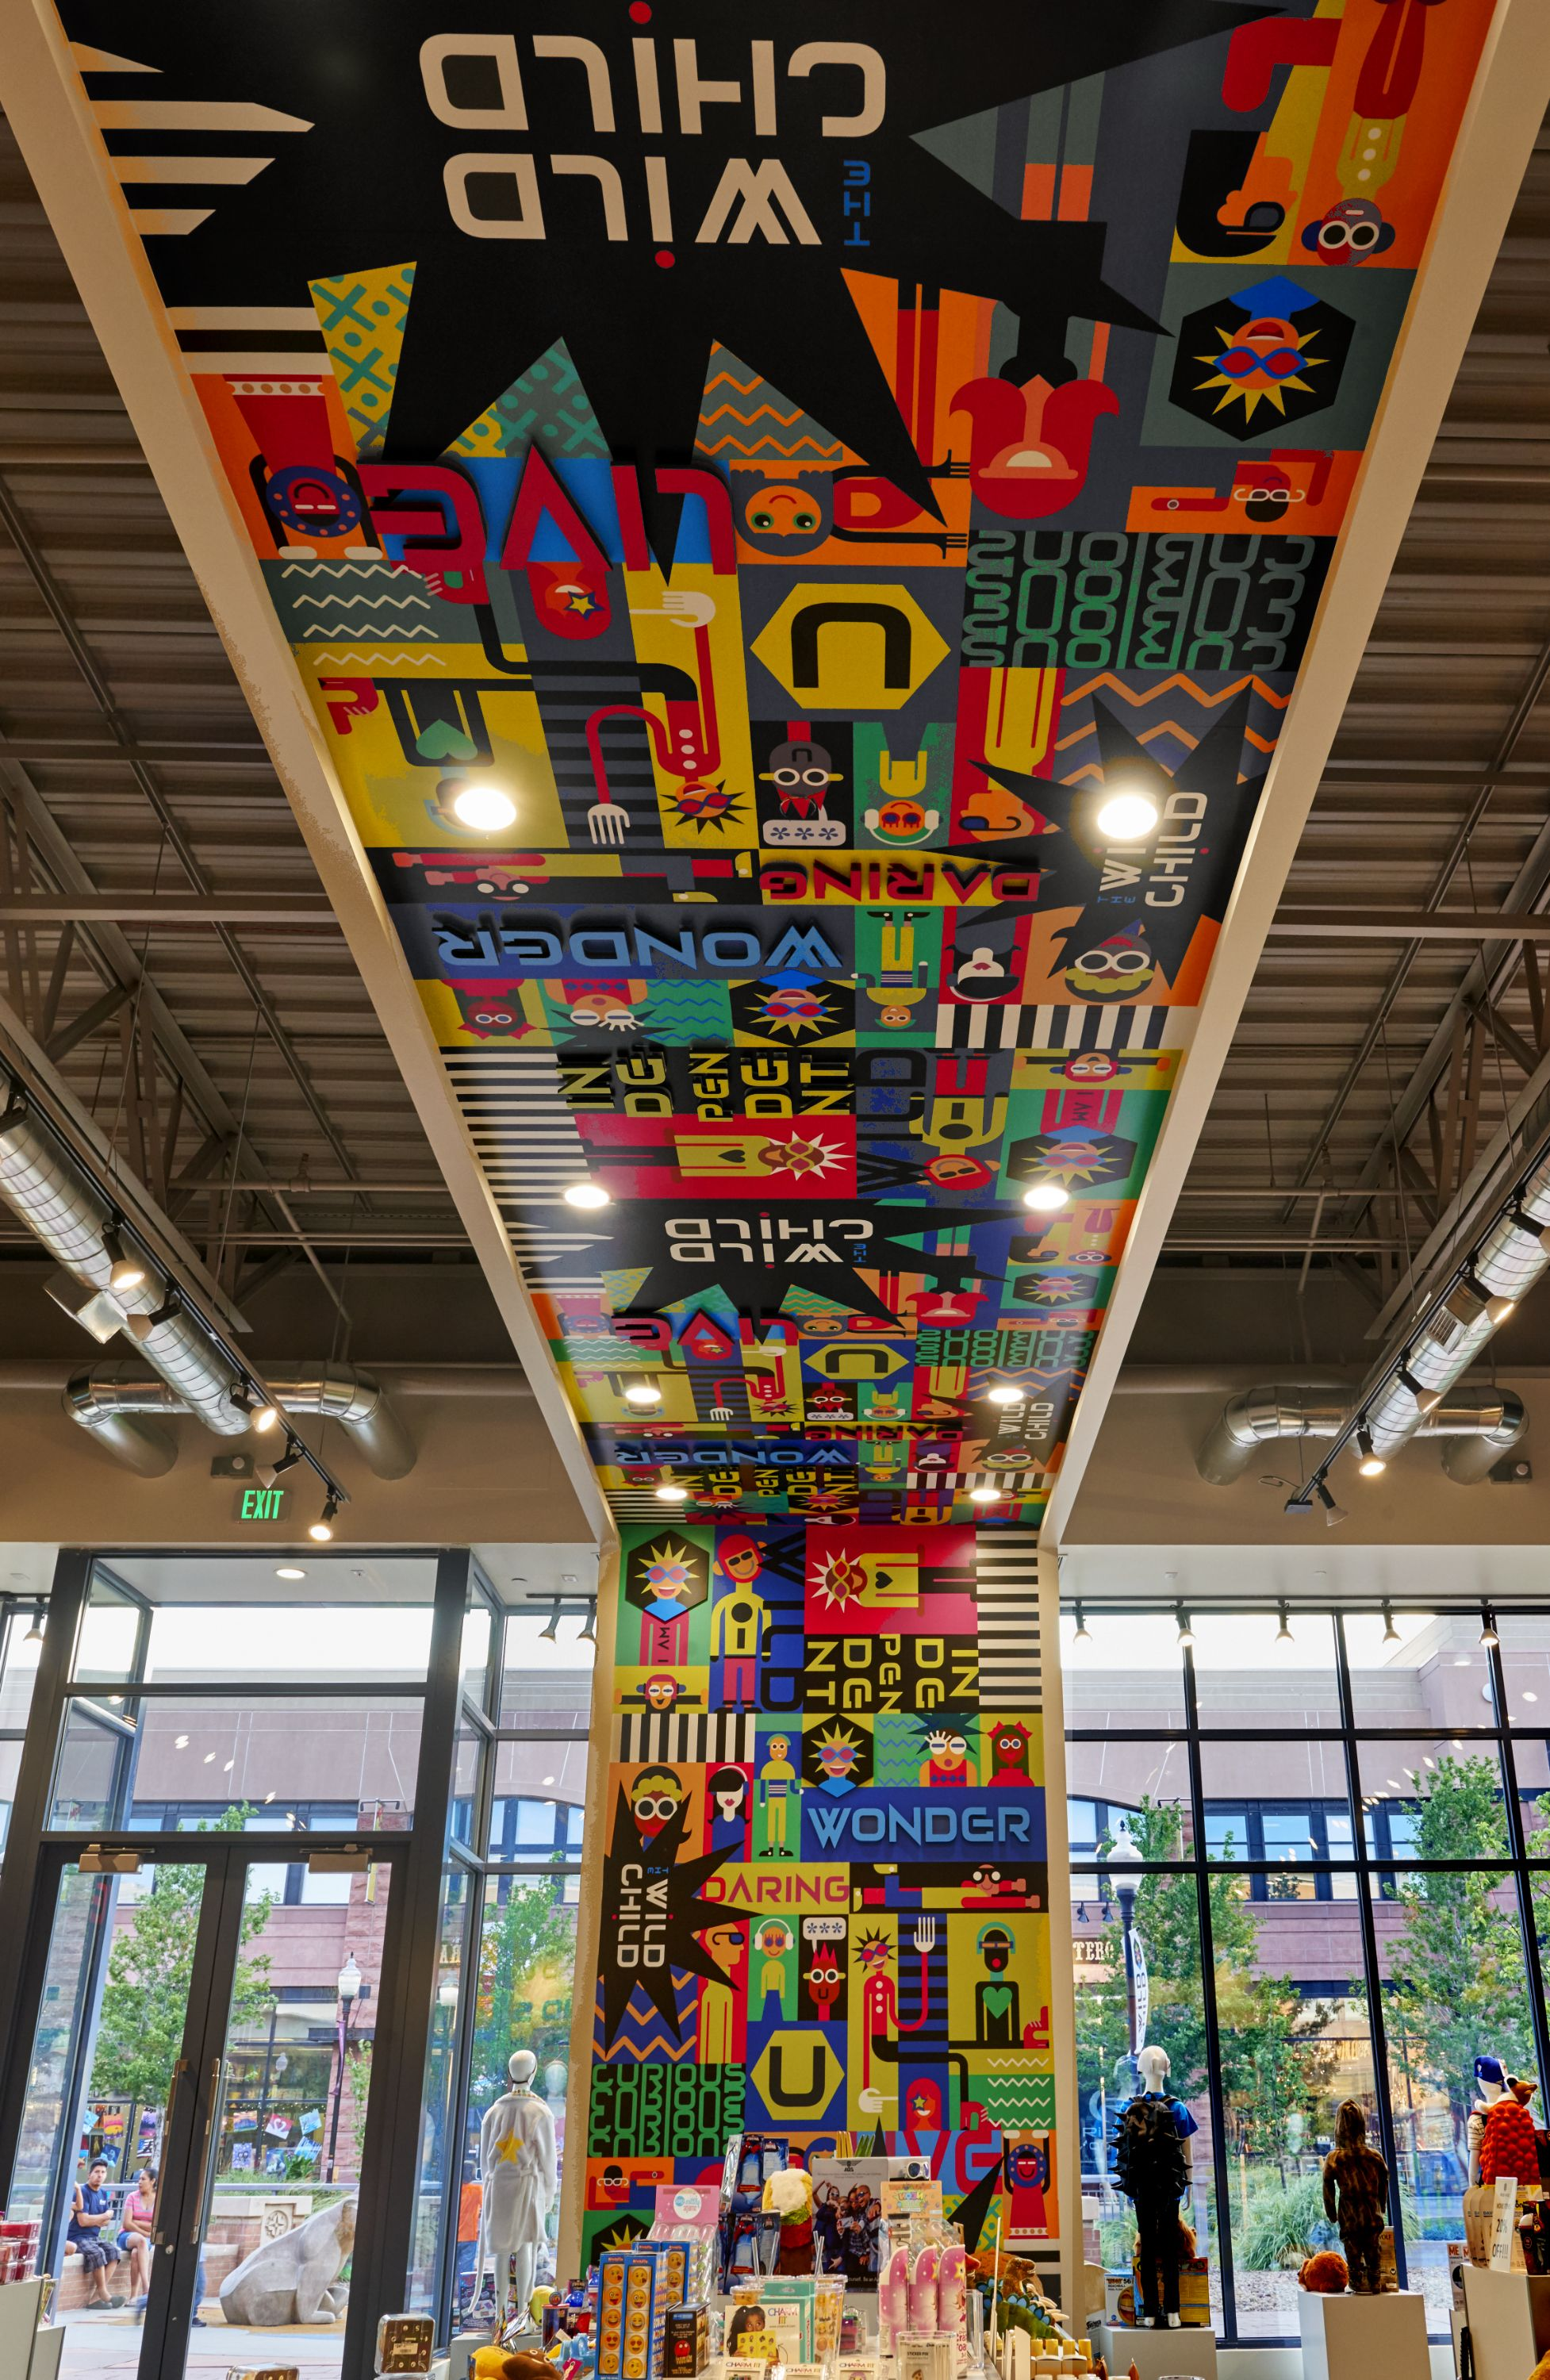 Ceiling and #wallgraphics in kids toy store in #Denver. # ...